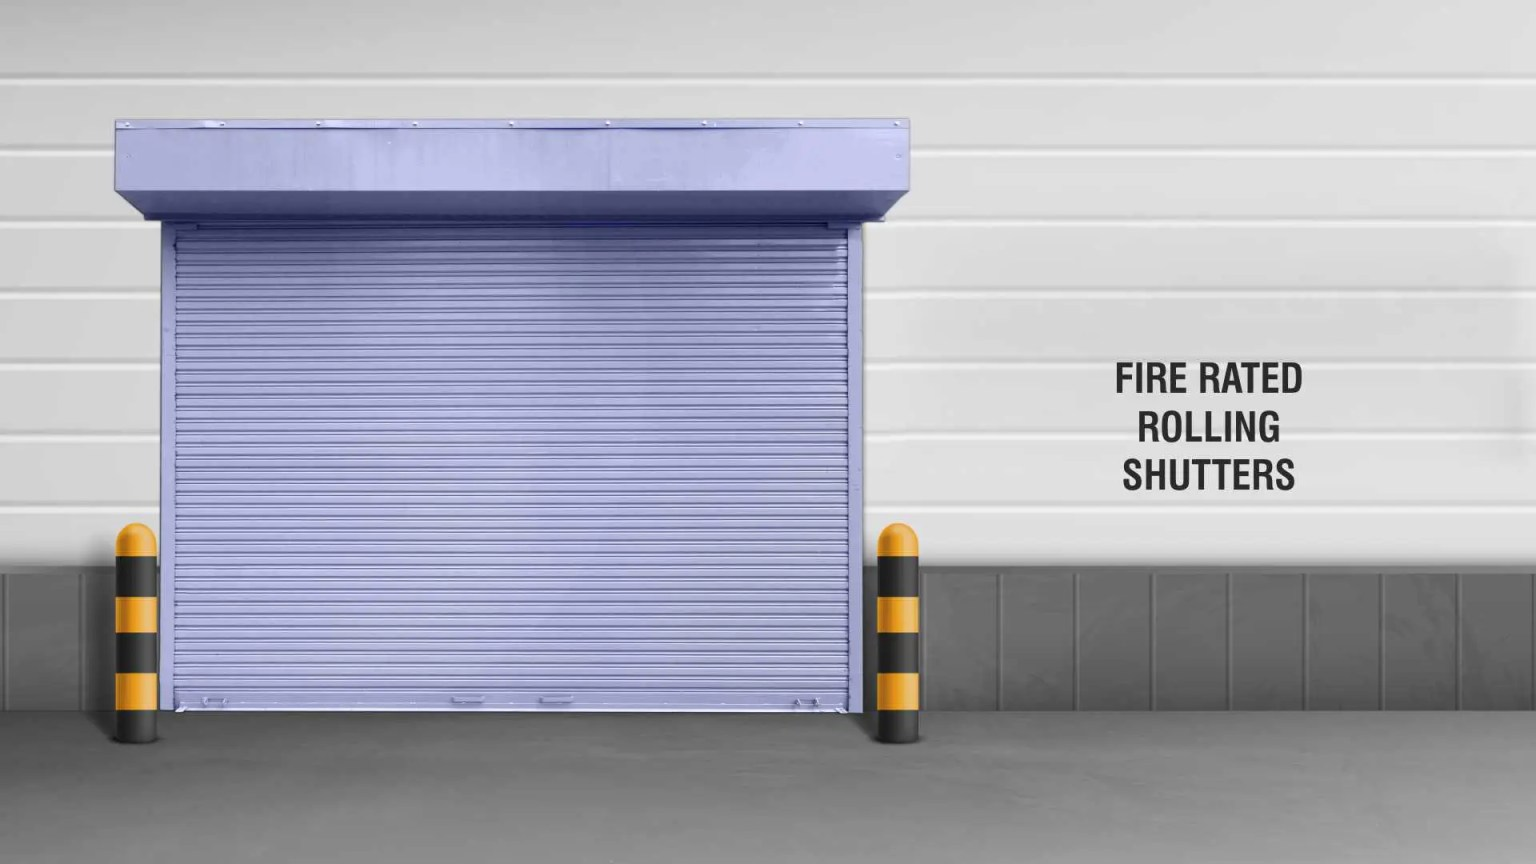 fire-rated-rolling-shutters